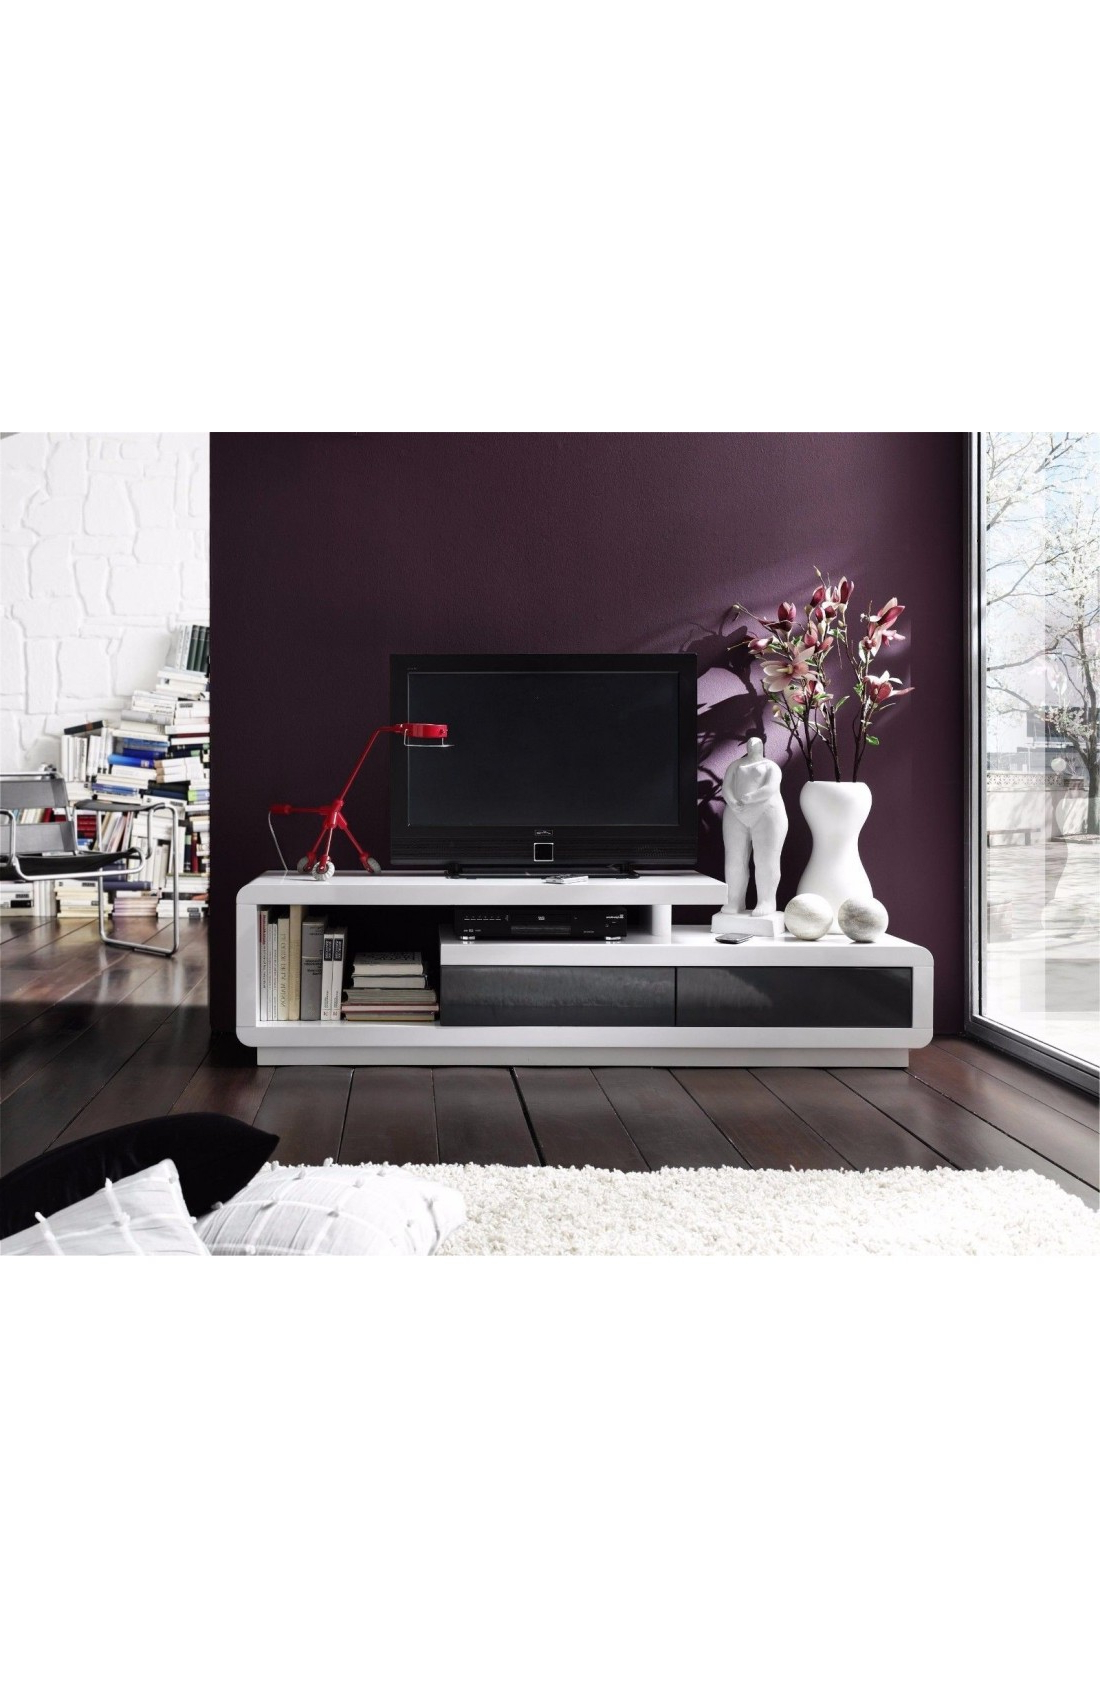 Most Popular Modanuvo White And Grey High Gloss Tv Unit Cabinet Stand Lowboard Inside High Gloss Tv Cabinets (View 4 of 20)